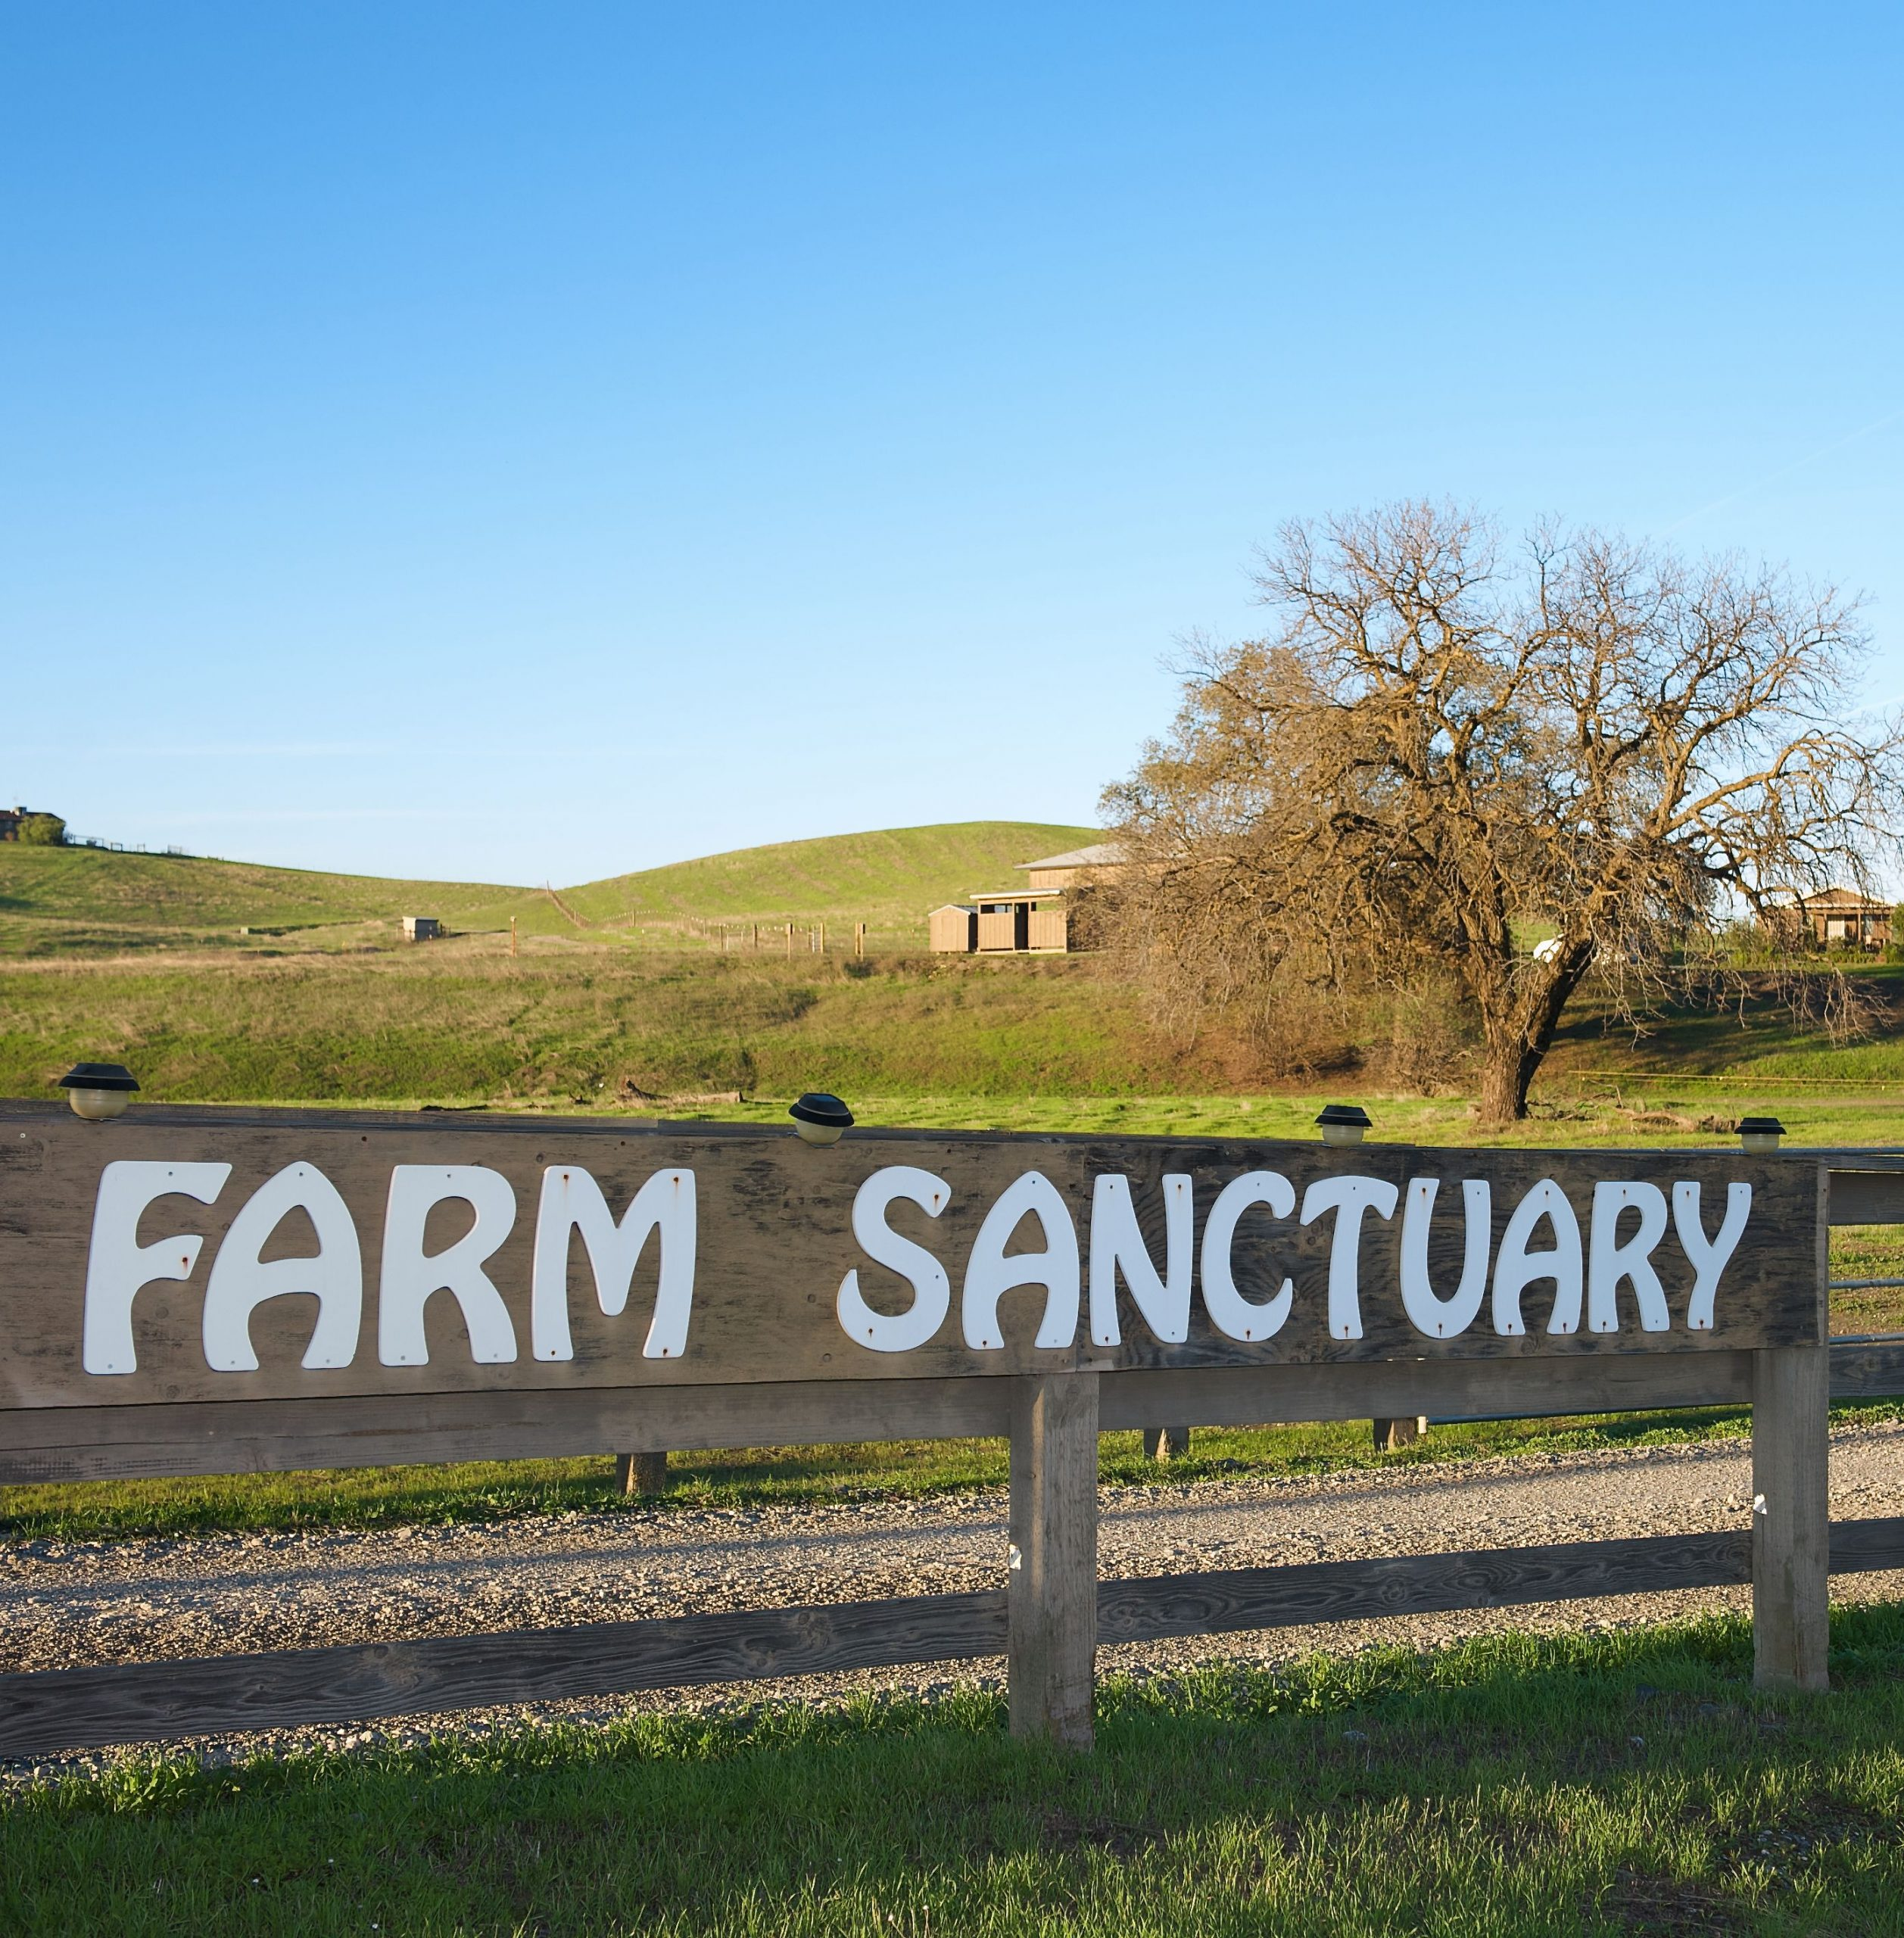 Farm Sanctuary sign in front of Orland location.